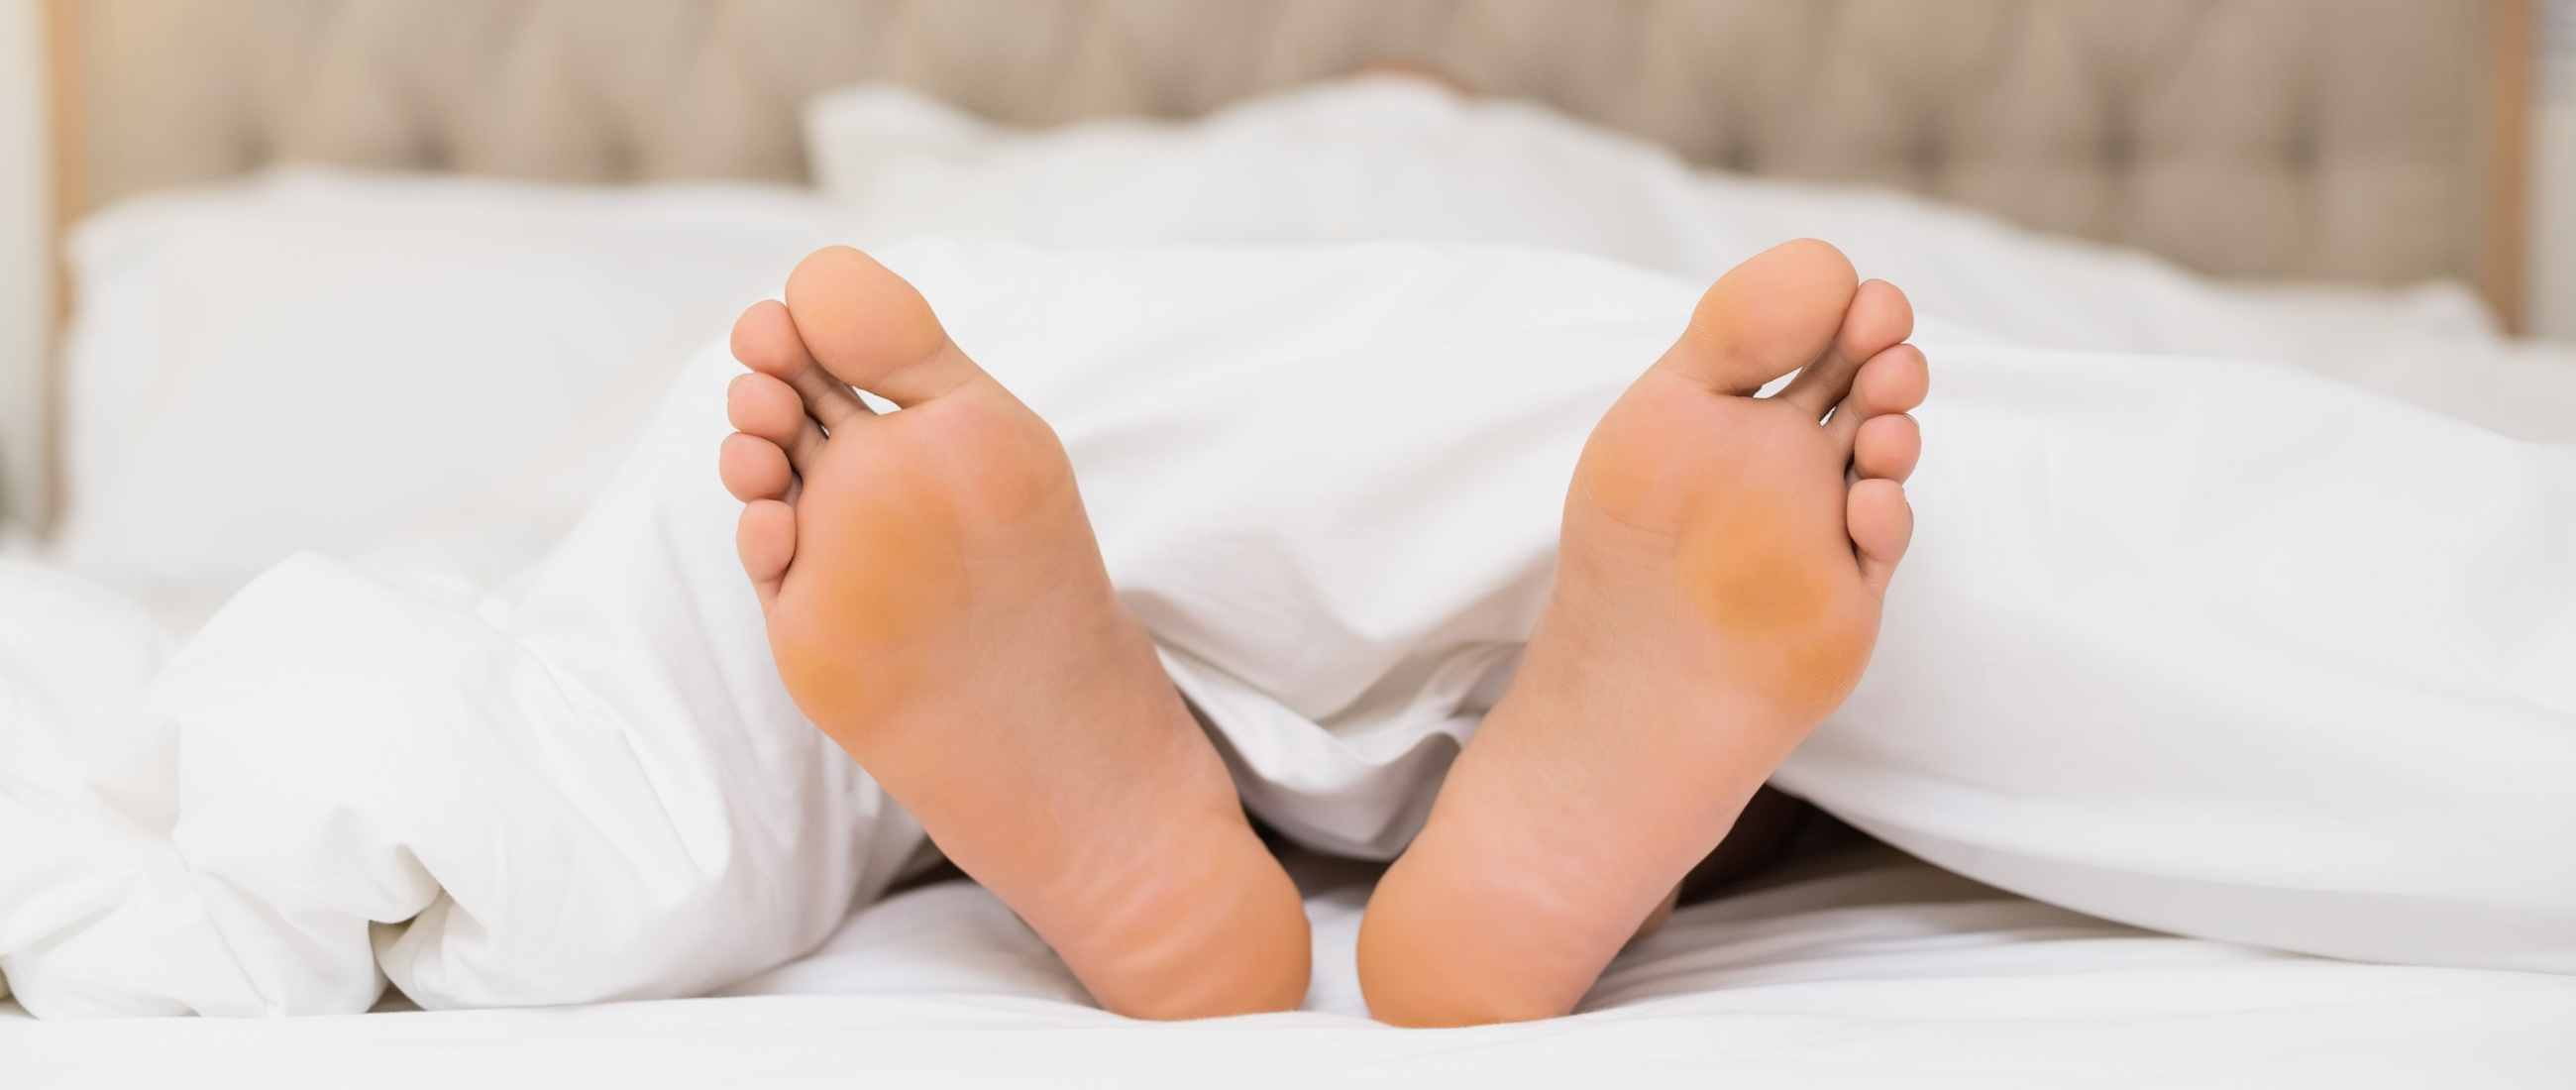 Feet In Bed Shutterstock Main Image